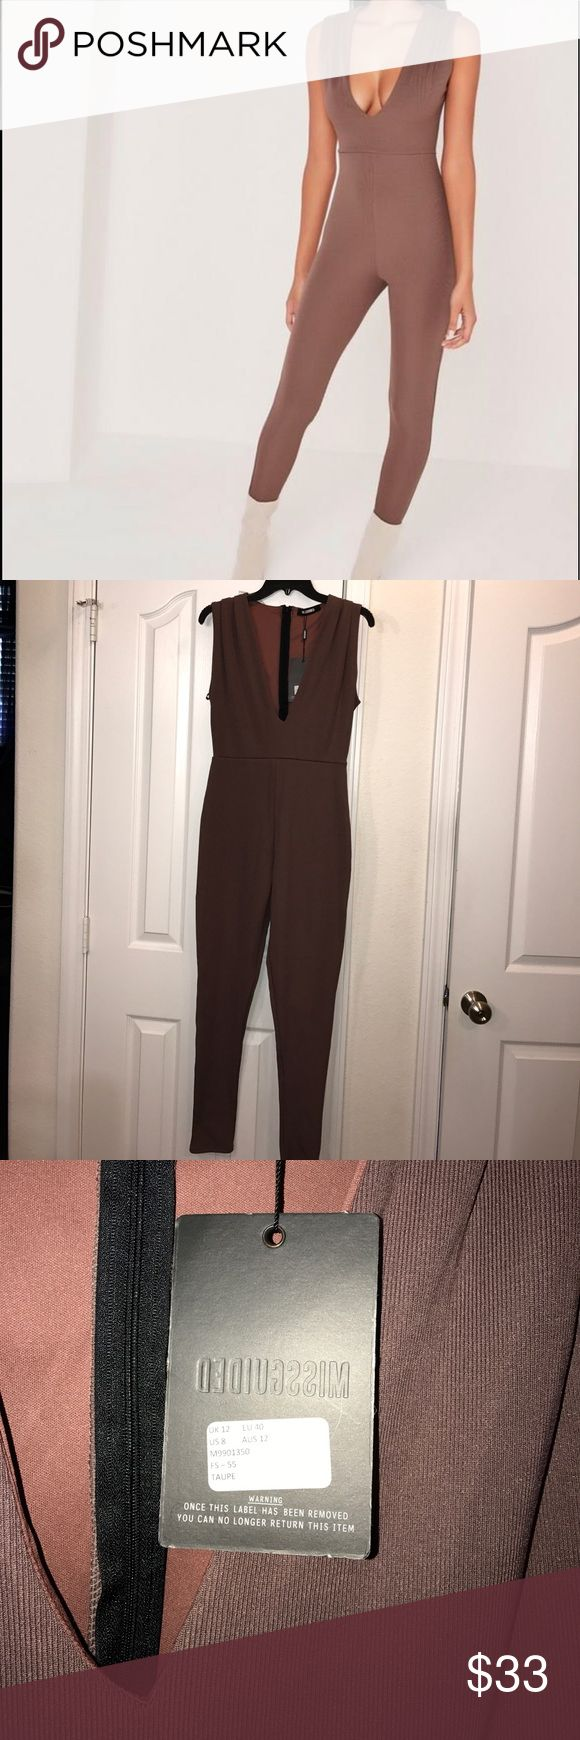 NWT! Missguided taupe jumpsuit sz 8 US NWT! Gorgeous Missguided taupe brown jumpsuit sz US 8. Excellent condition 😍 no stains or rips. 95%polyester 5%elastane. Stretchy material. Missguided Pants Jumpsuits & Rompers